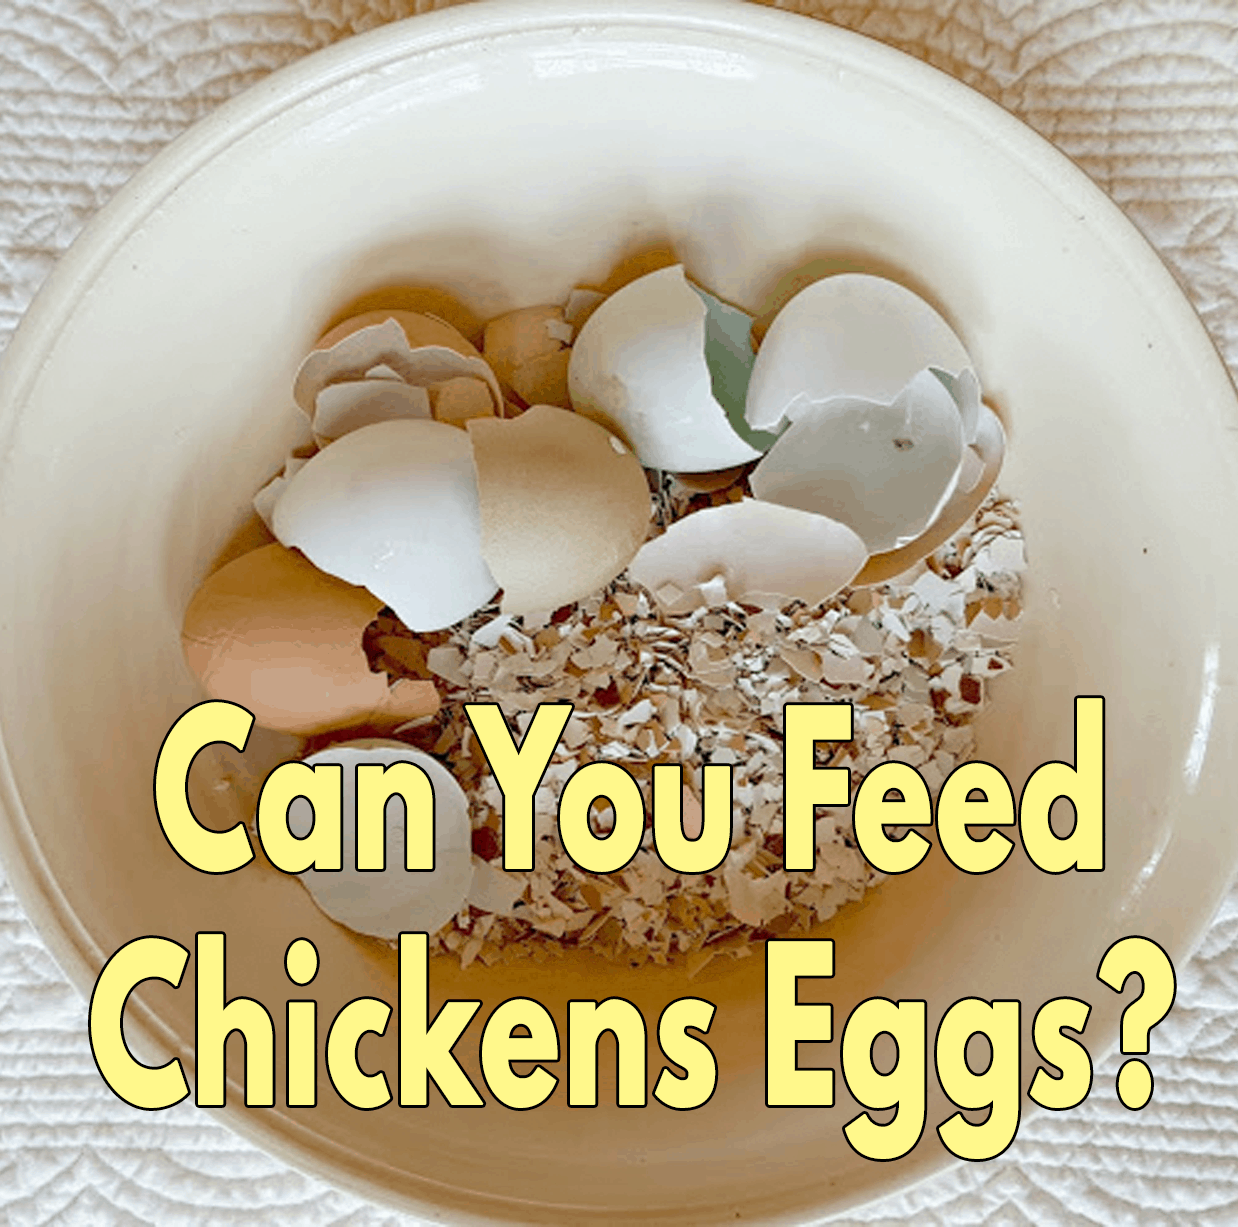 Can you feed chickens eggs?